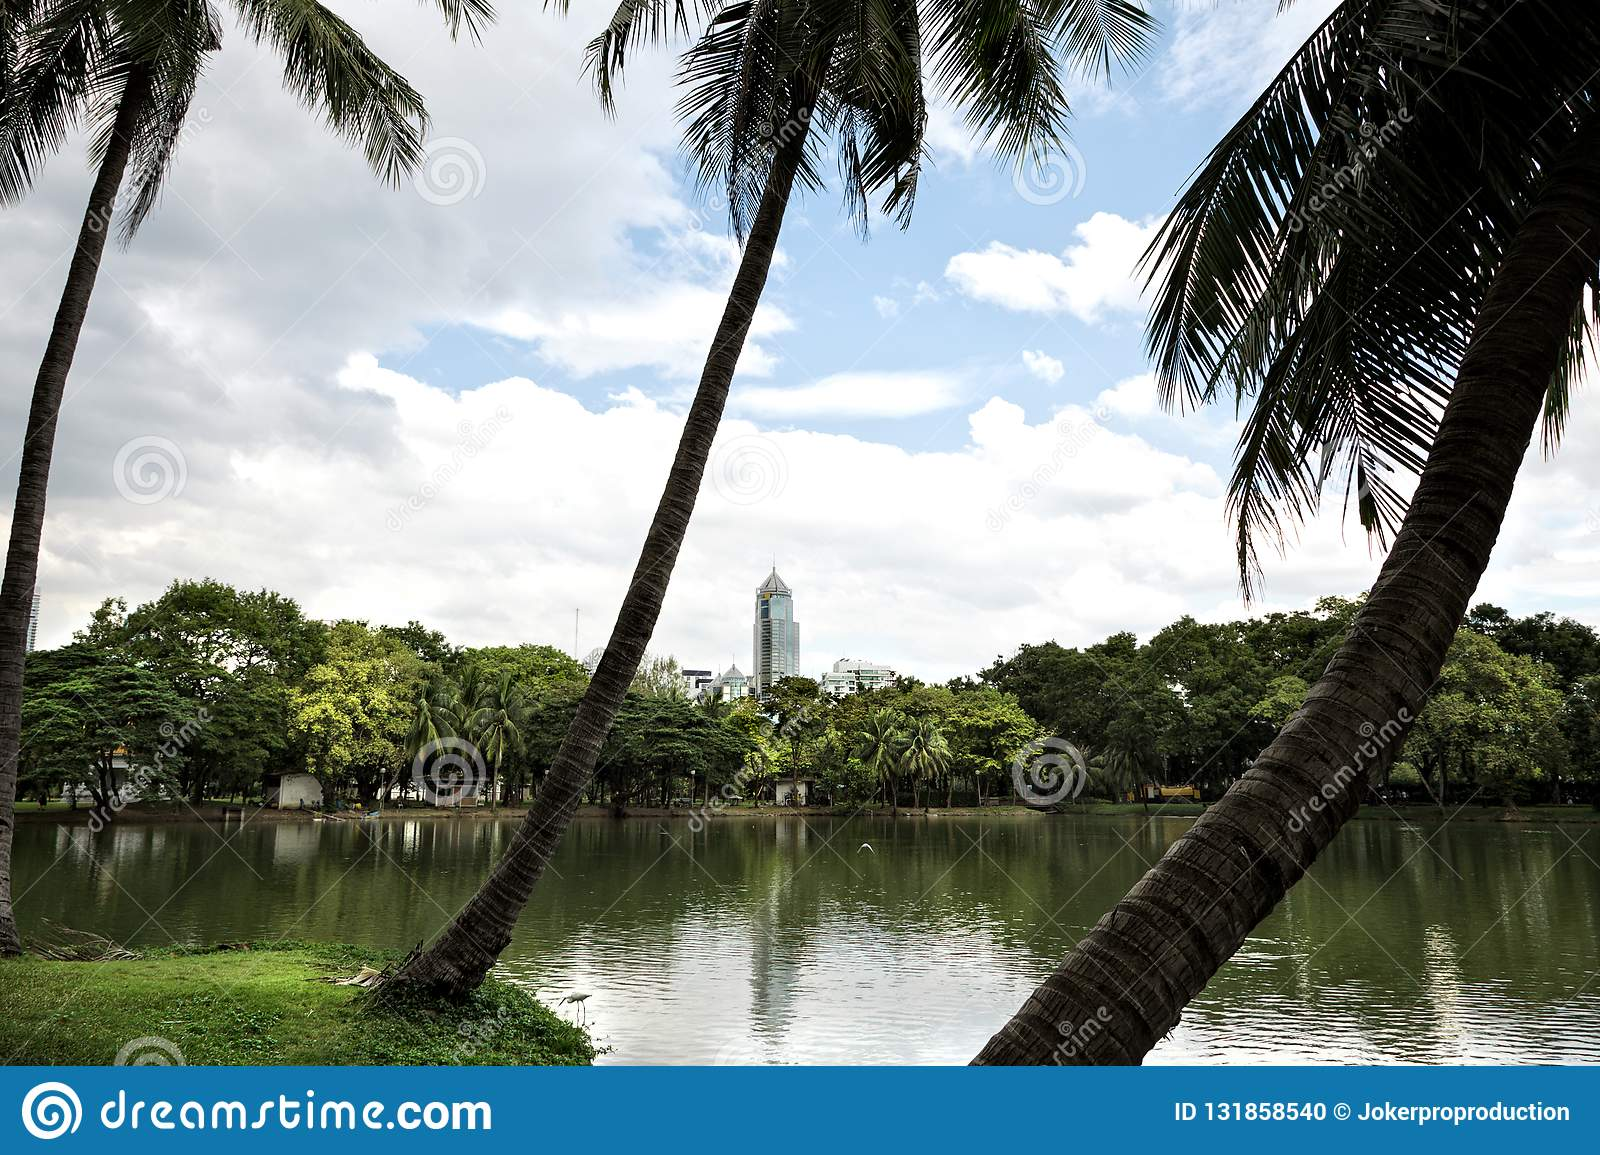 Landscape of lakeside view with palm trees in Lumphini Park in B